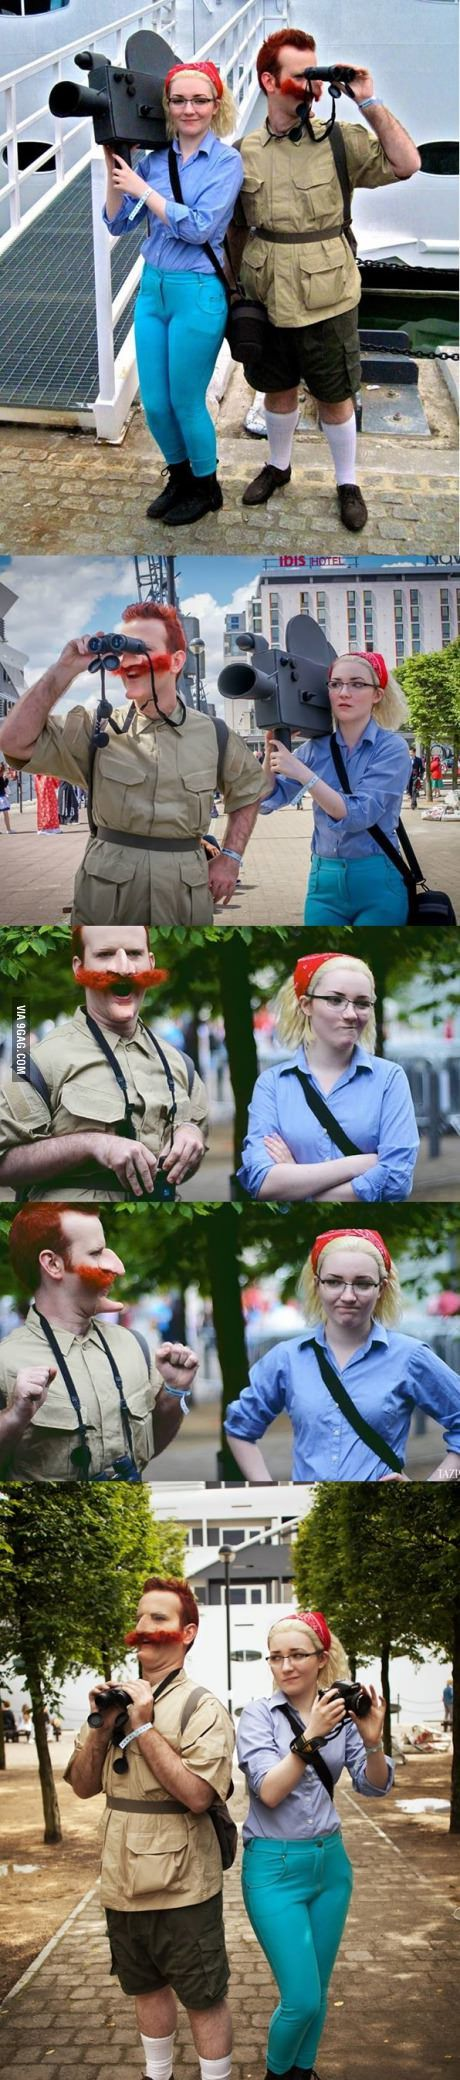 The Wild Thornberrys cosplay